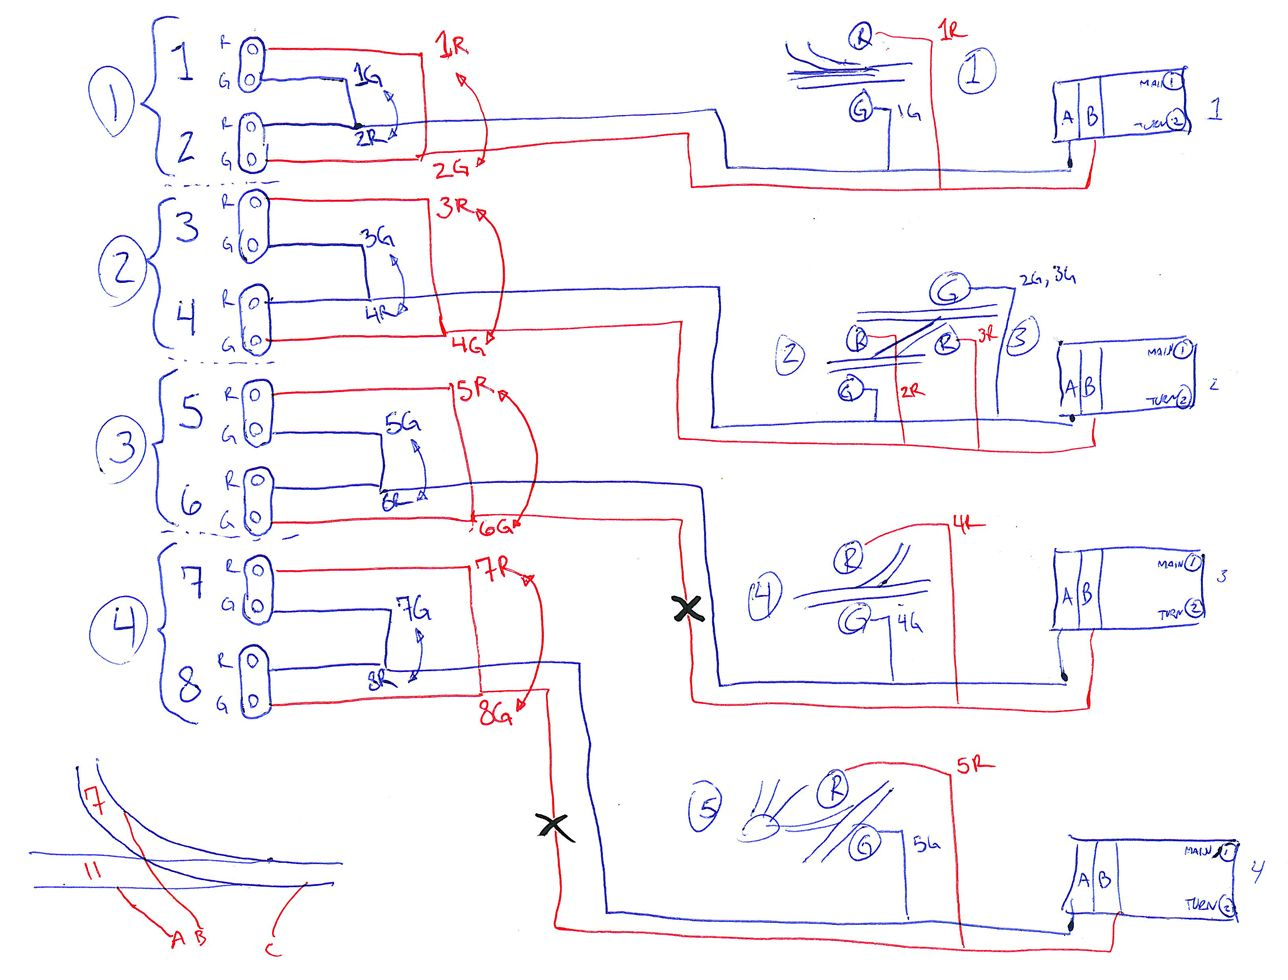 small resolution of planning sketch depicting wiring for the trackside signals control panel model trains diagram